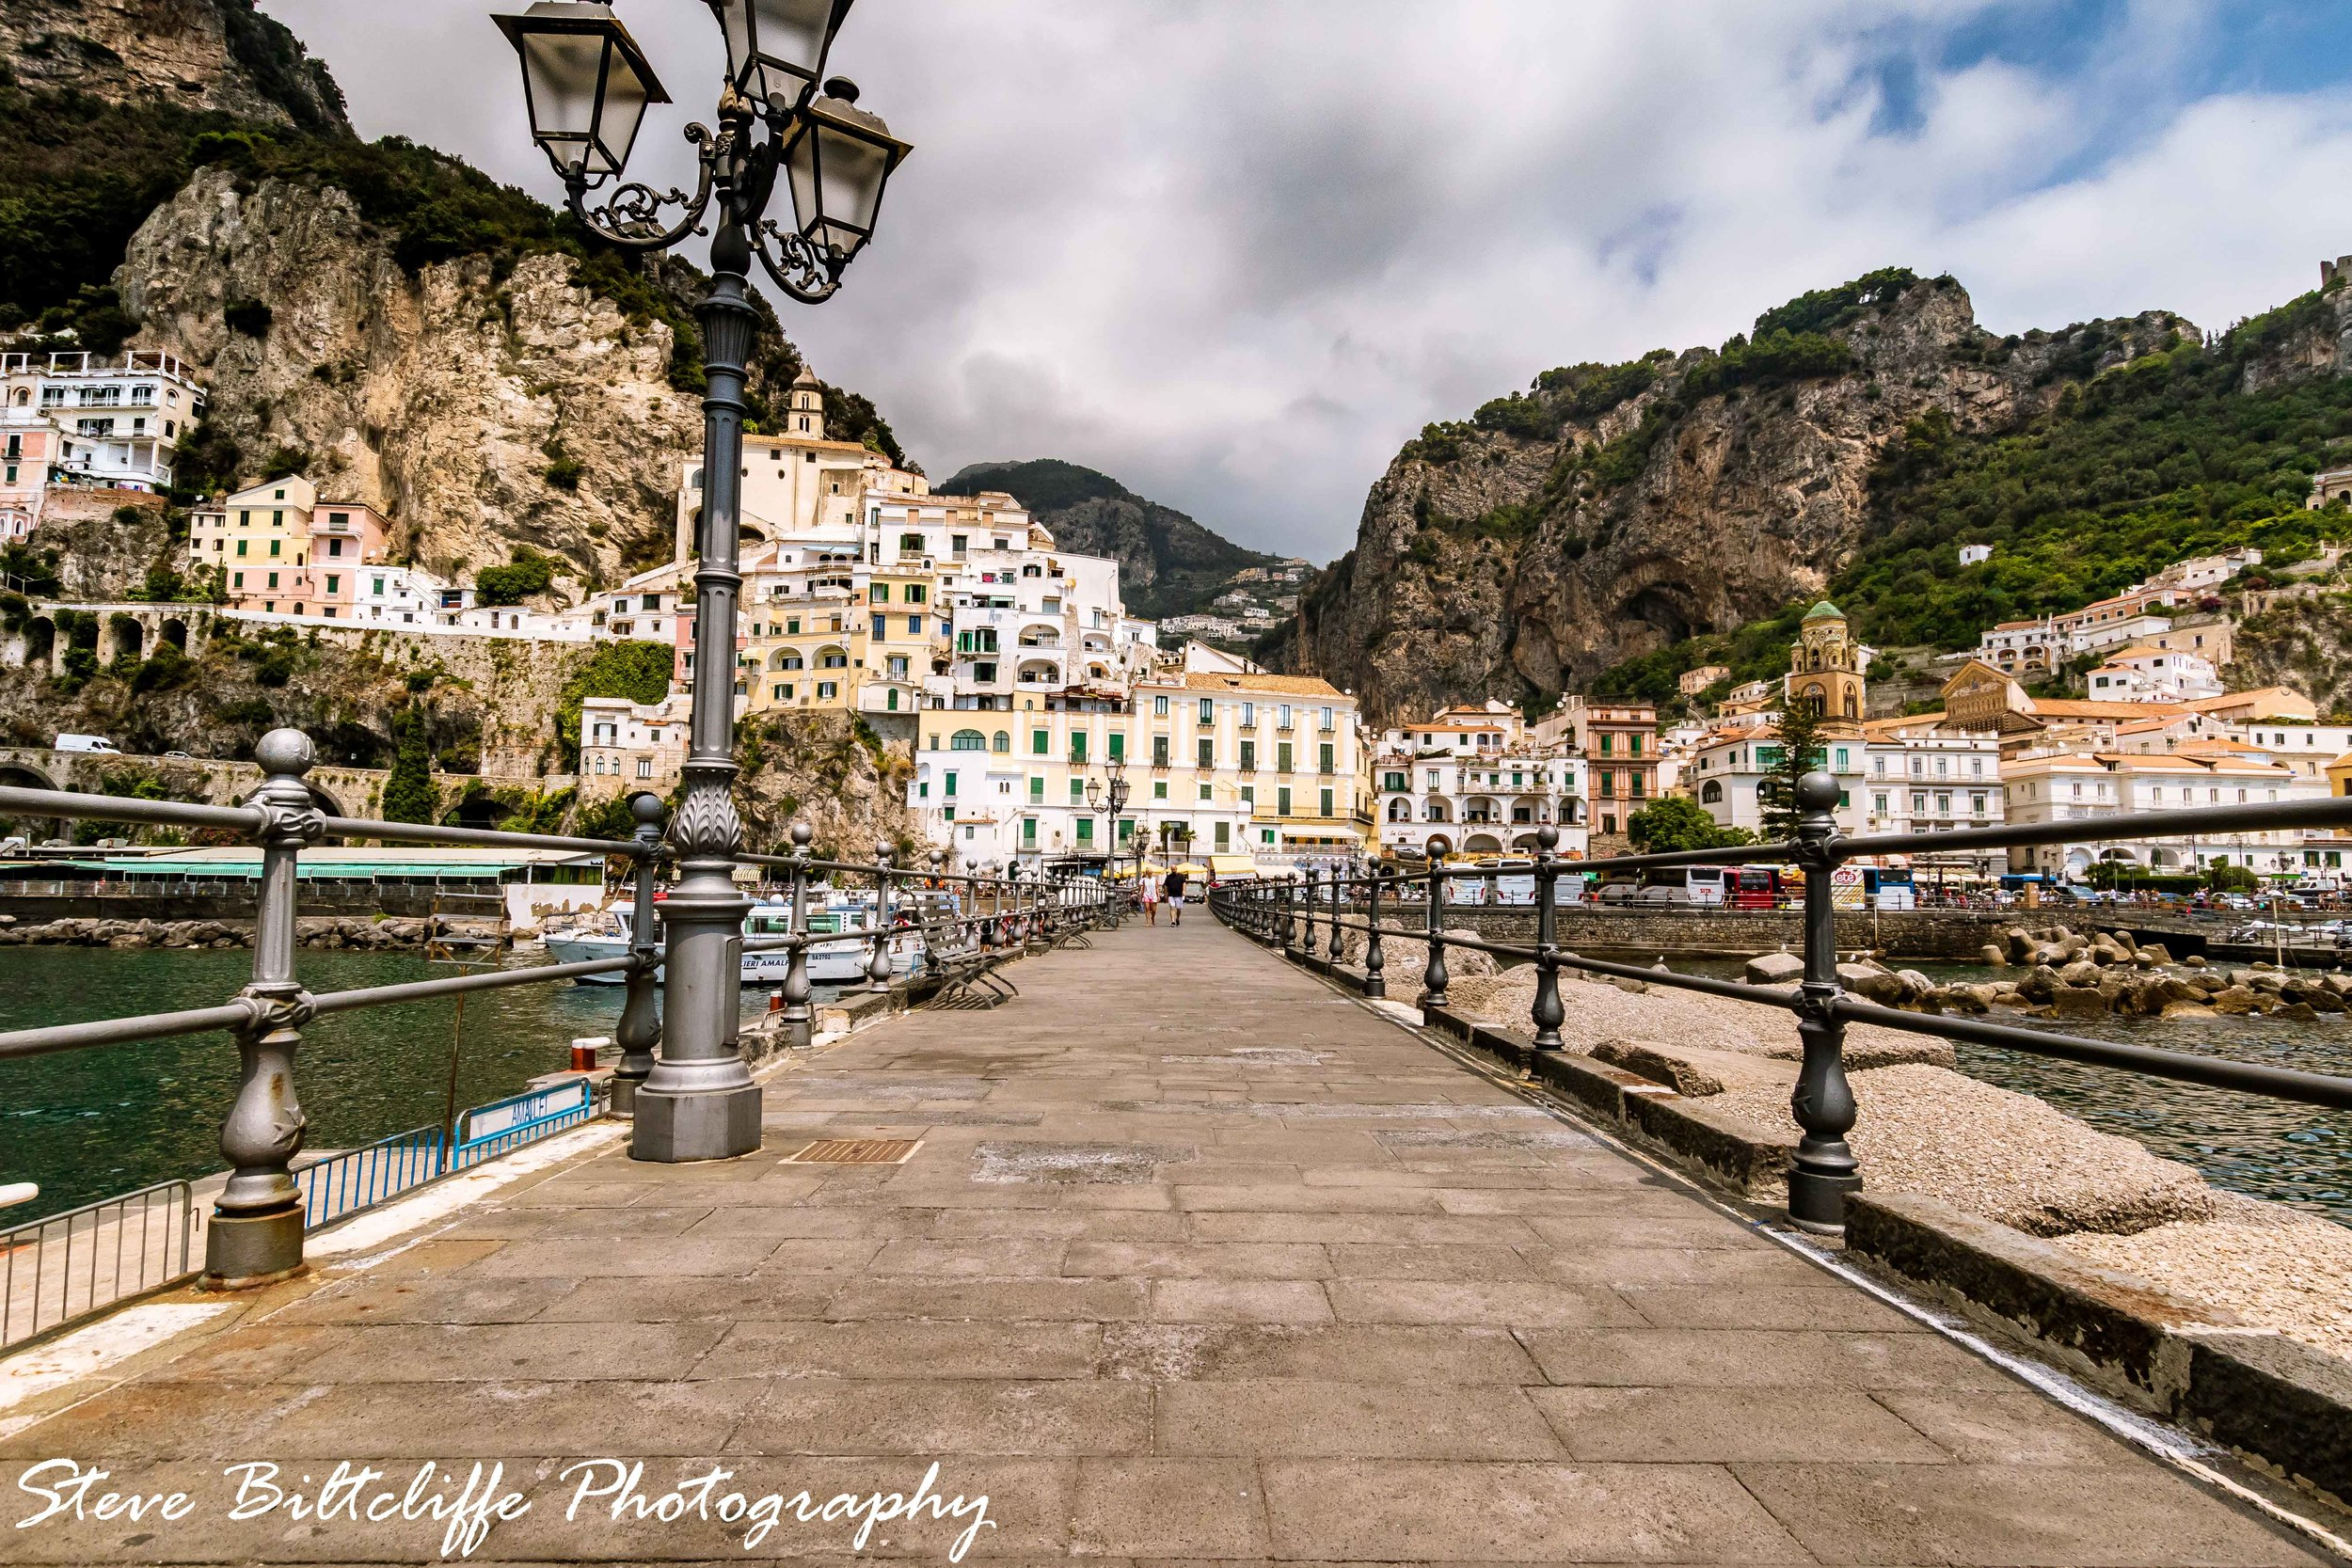 Amalfi - Just beautiful